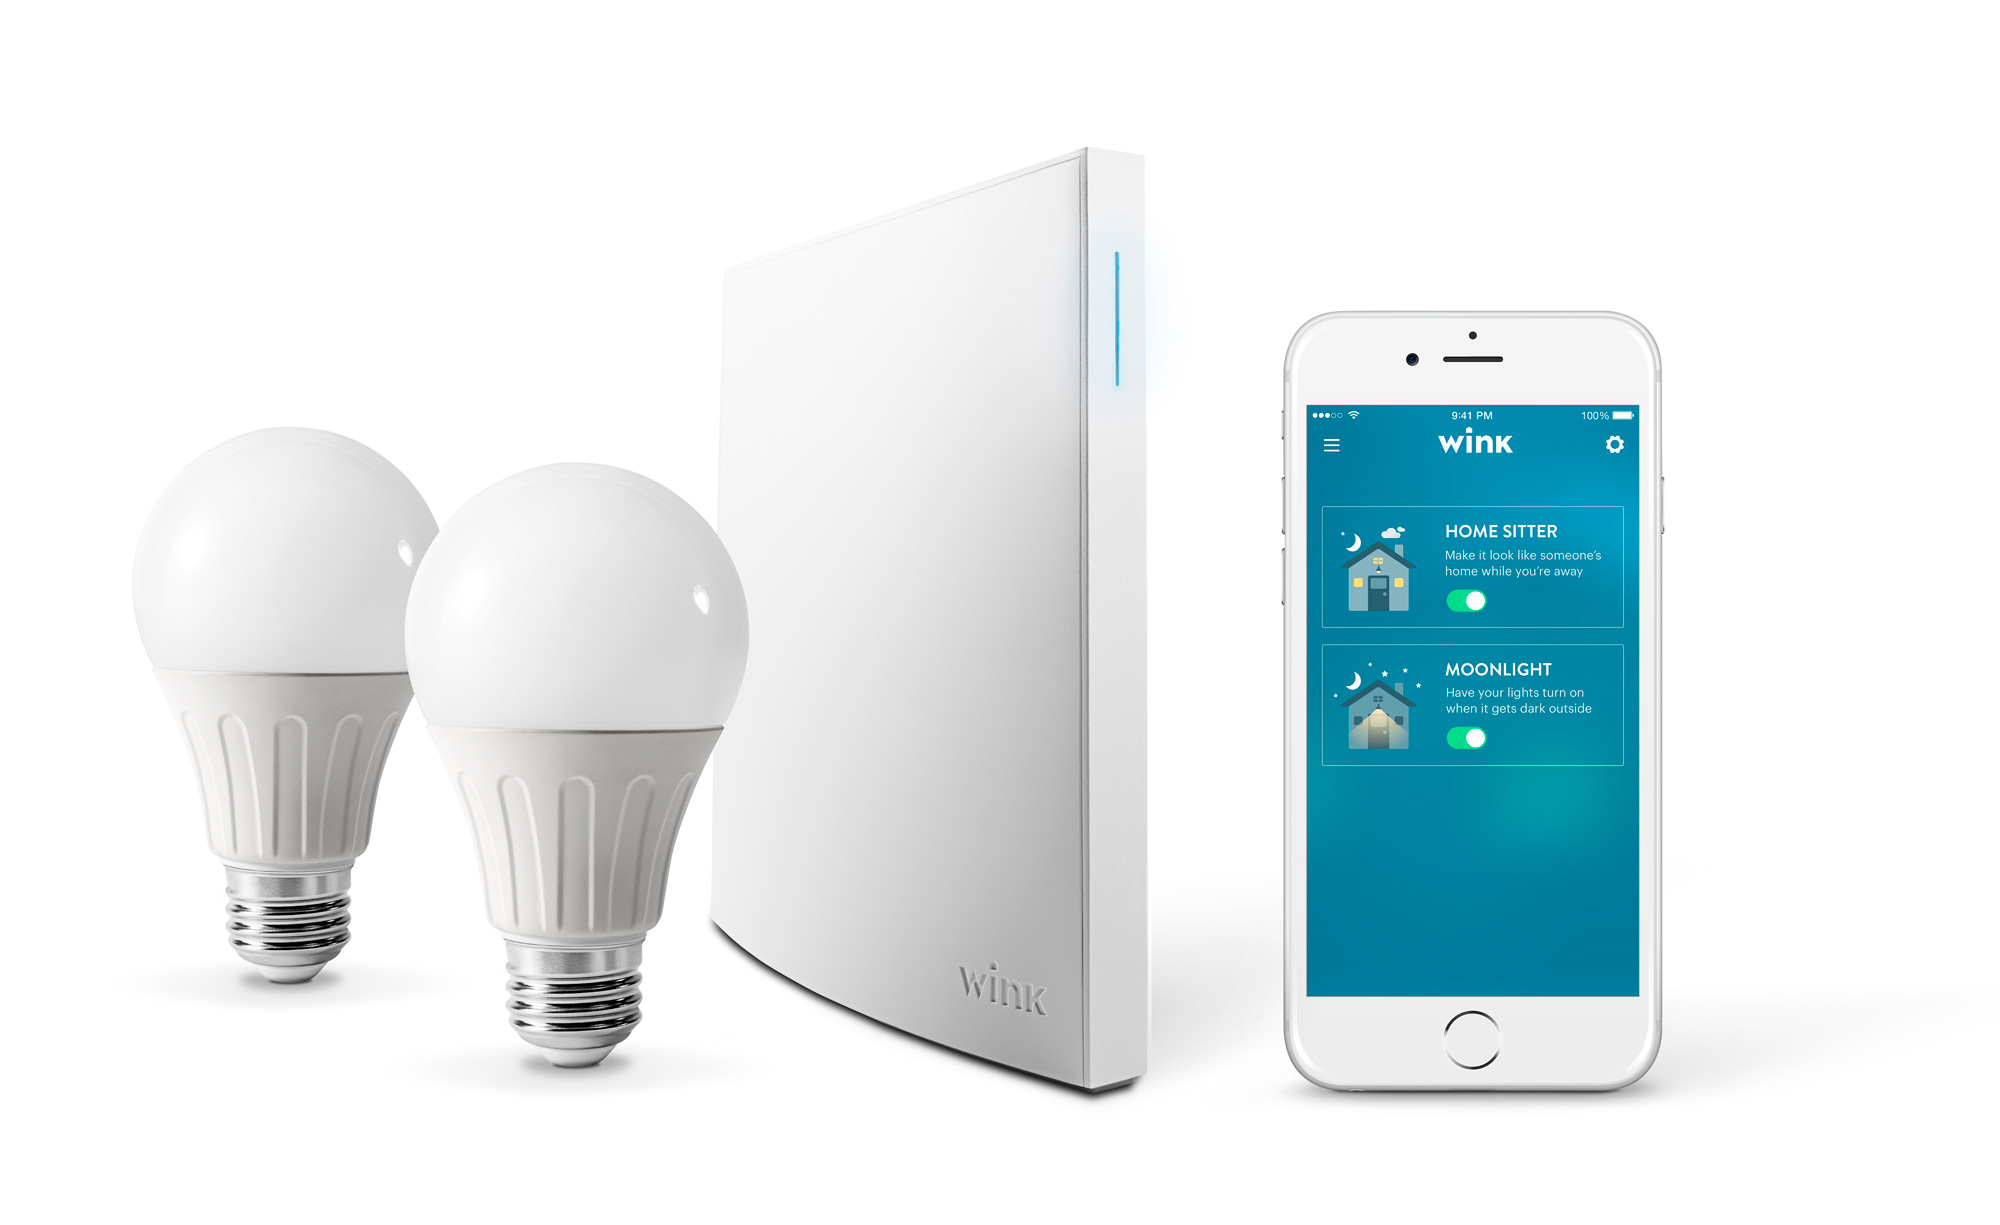 Wink | Buy and View Smart Home Products